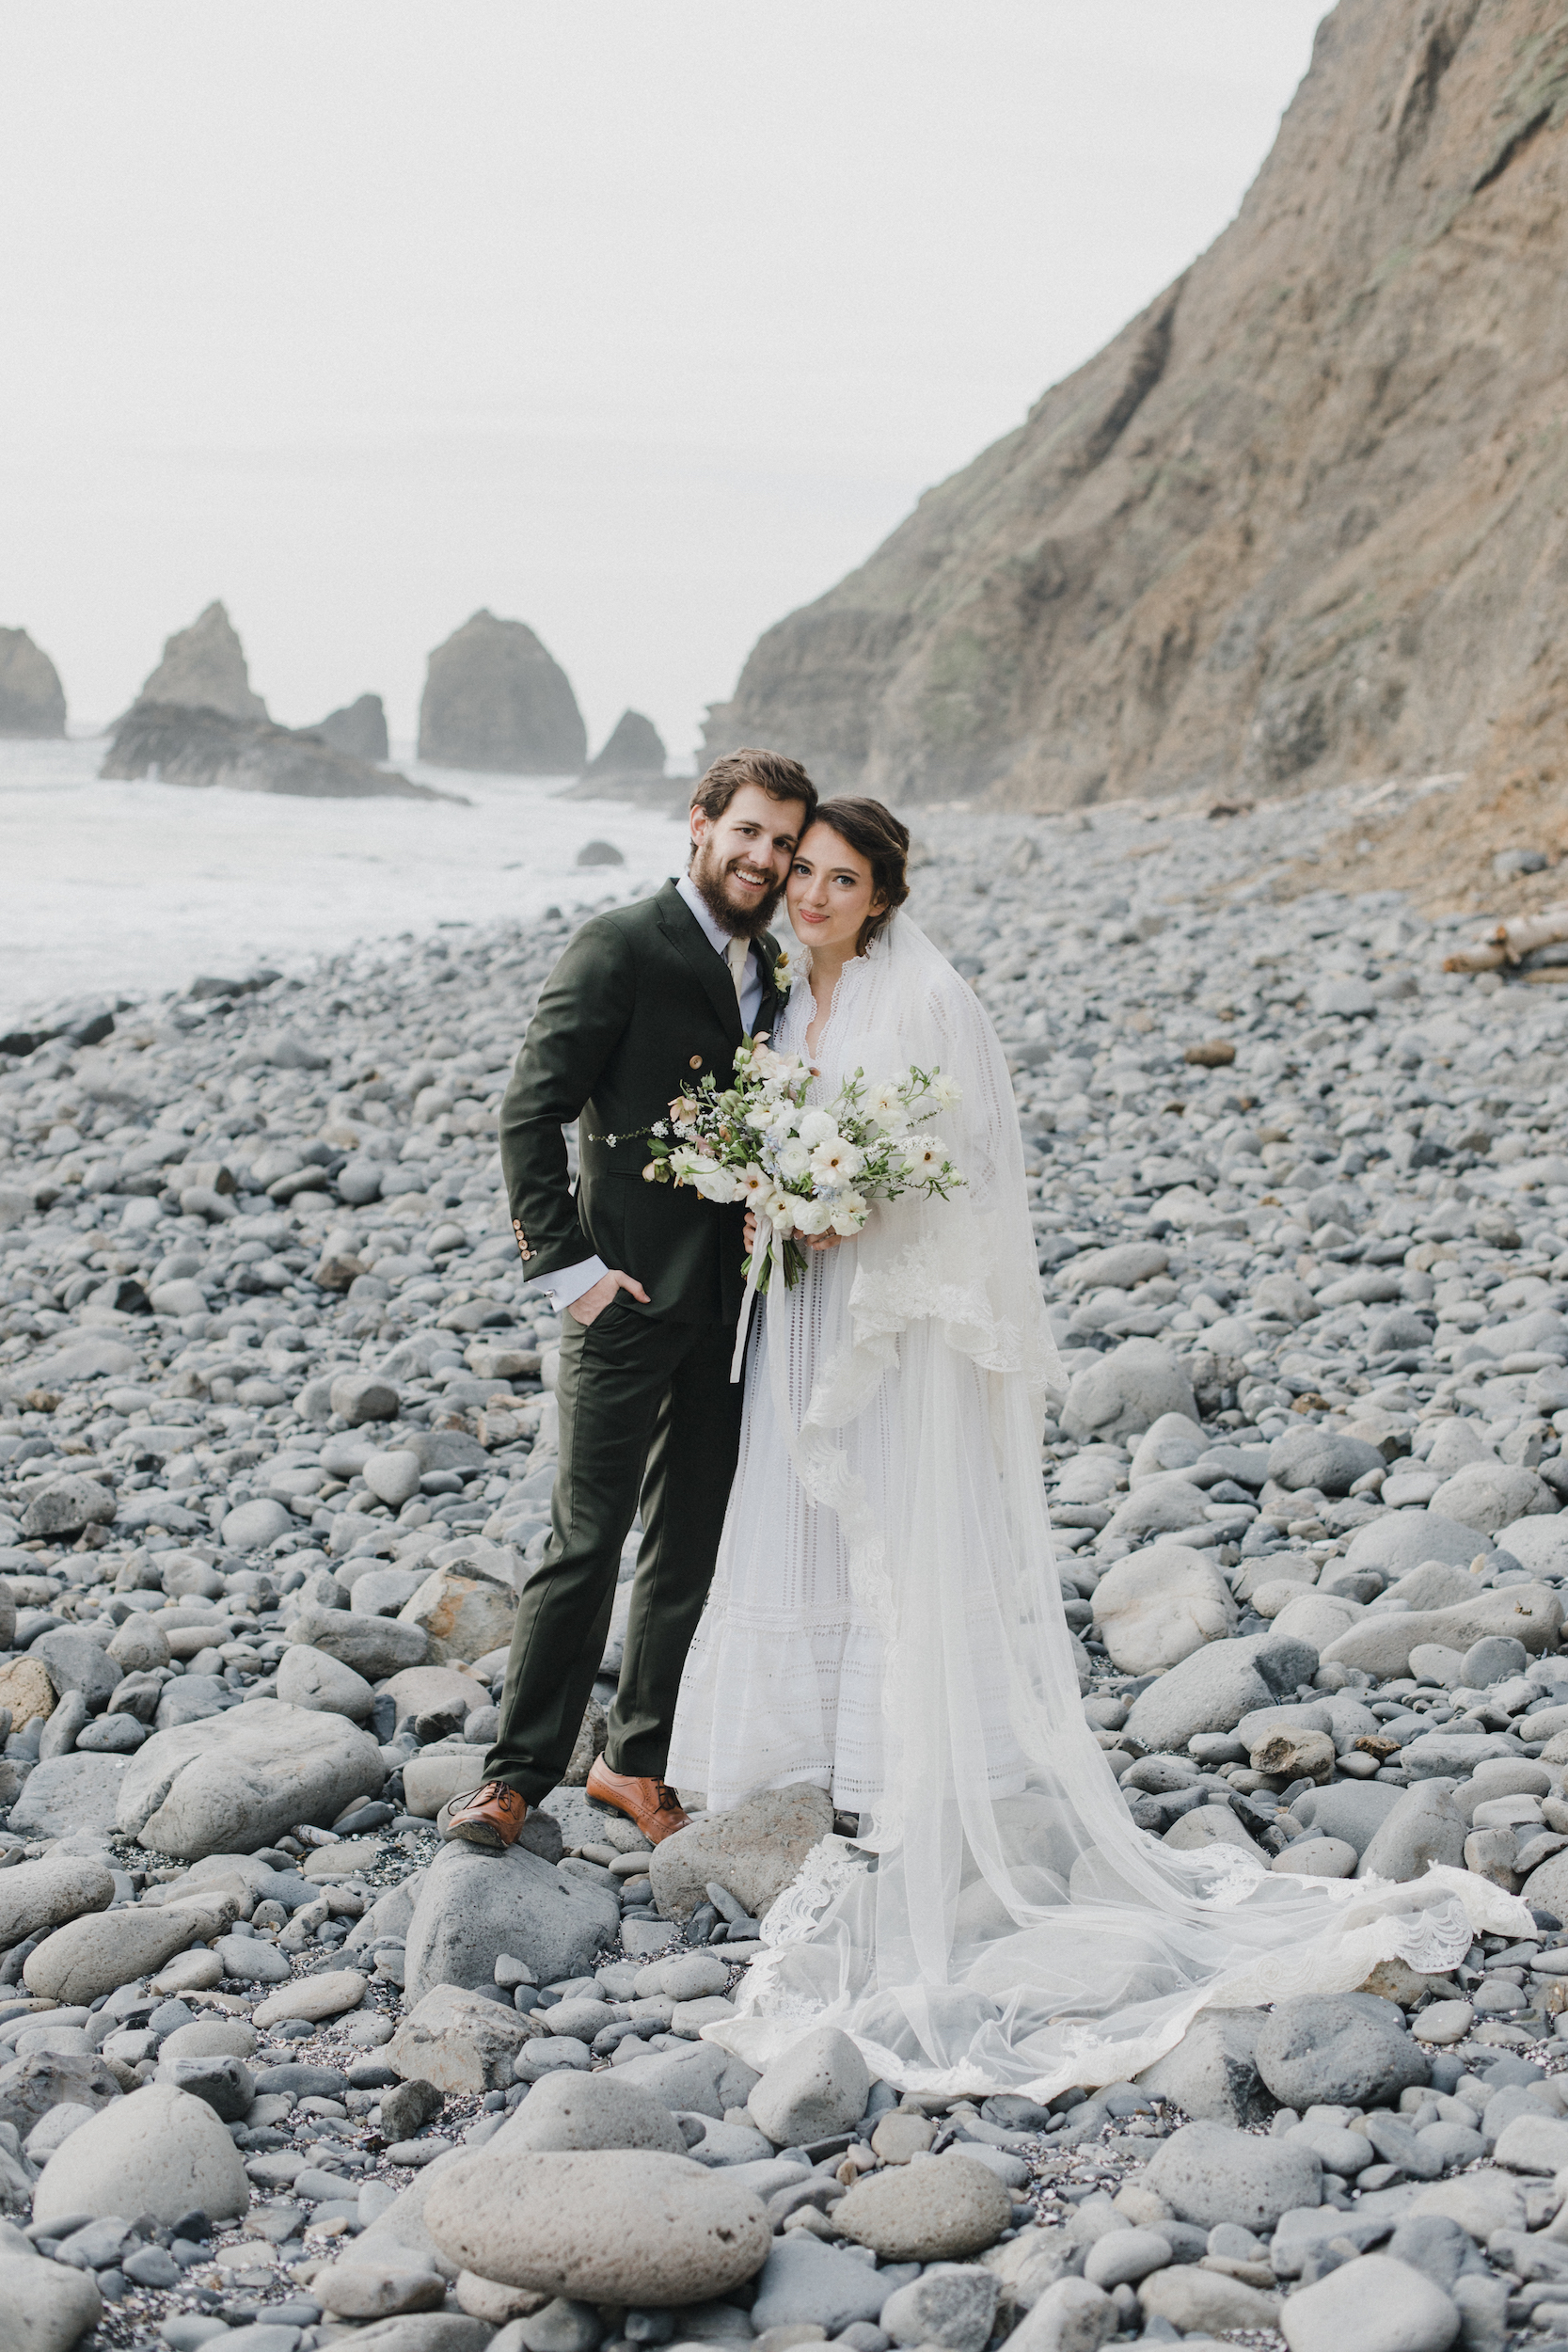 GABRIELLA + TYLER - CANNON BEACH | OREGON COAST